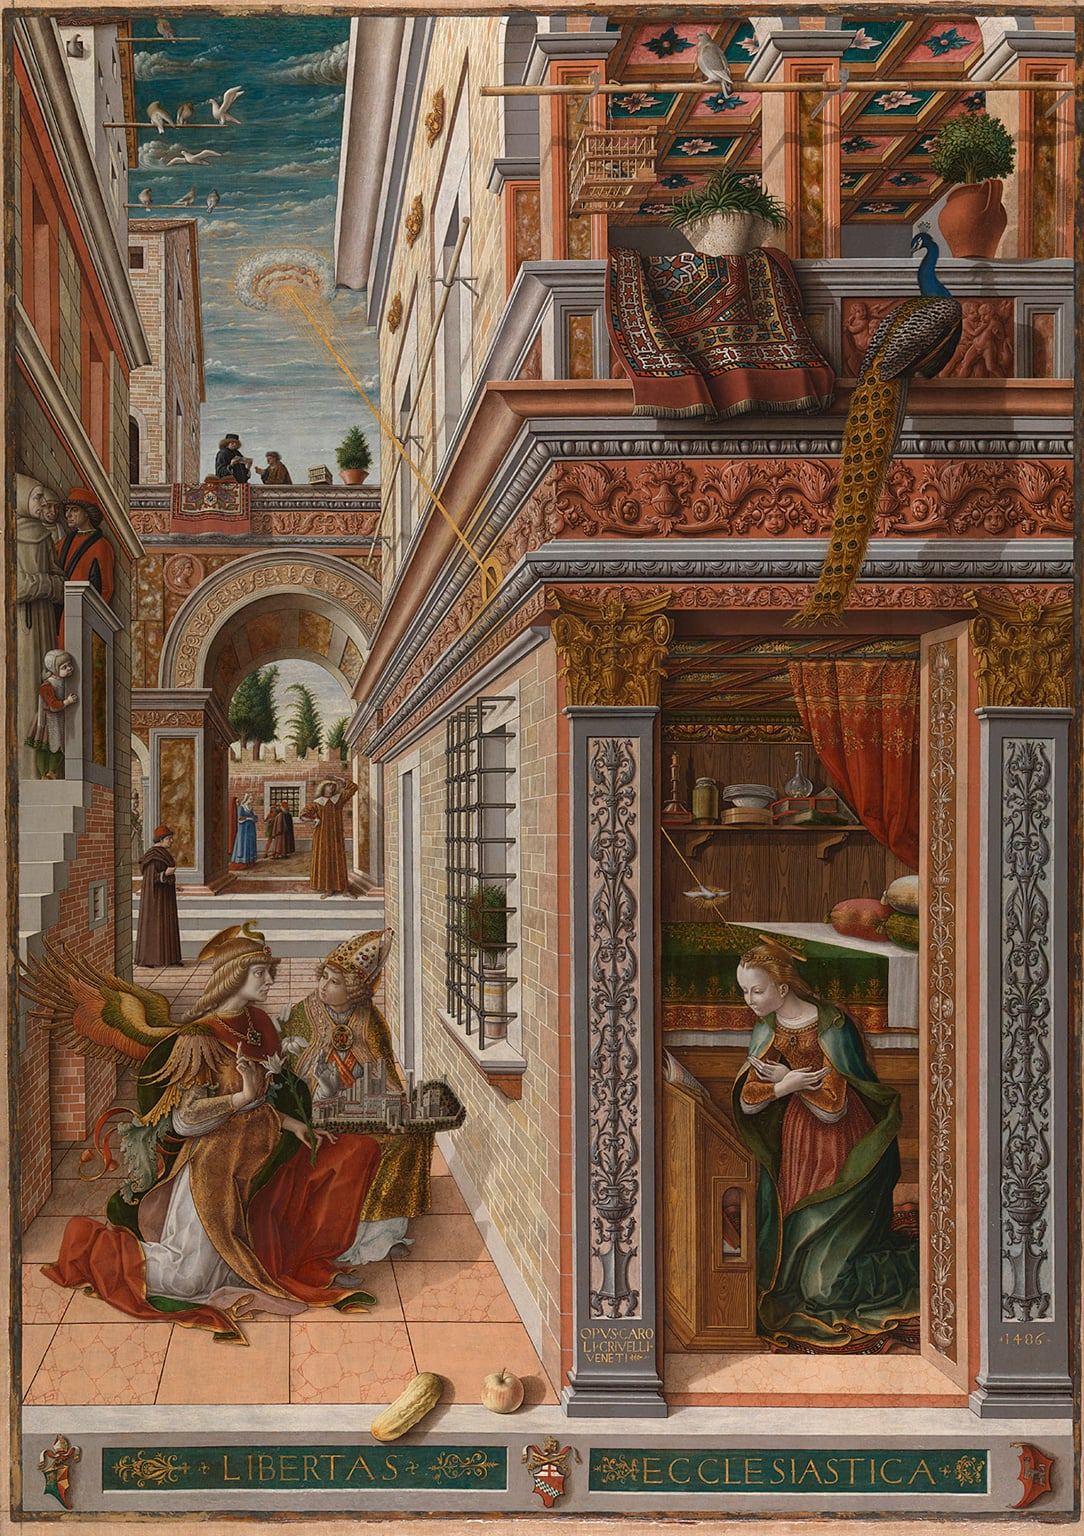 3. Building the Picture: Architecture in Italian Renaissance Painting - 30 April to 21 September 2014, National Gallery, London